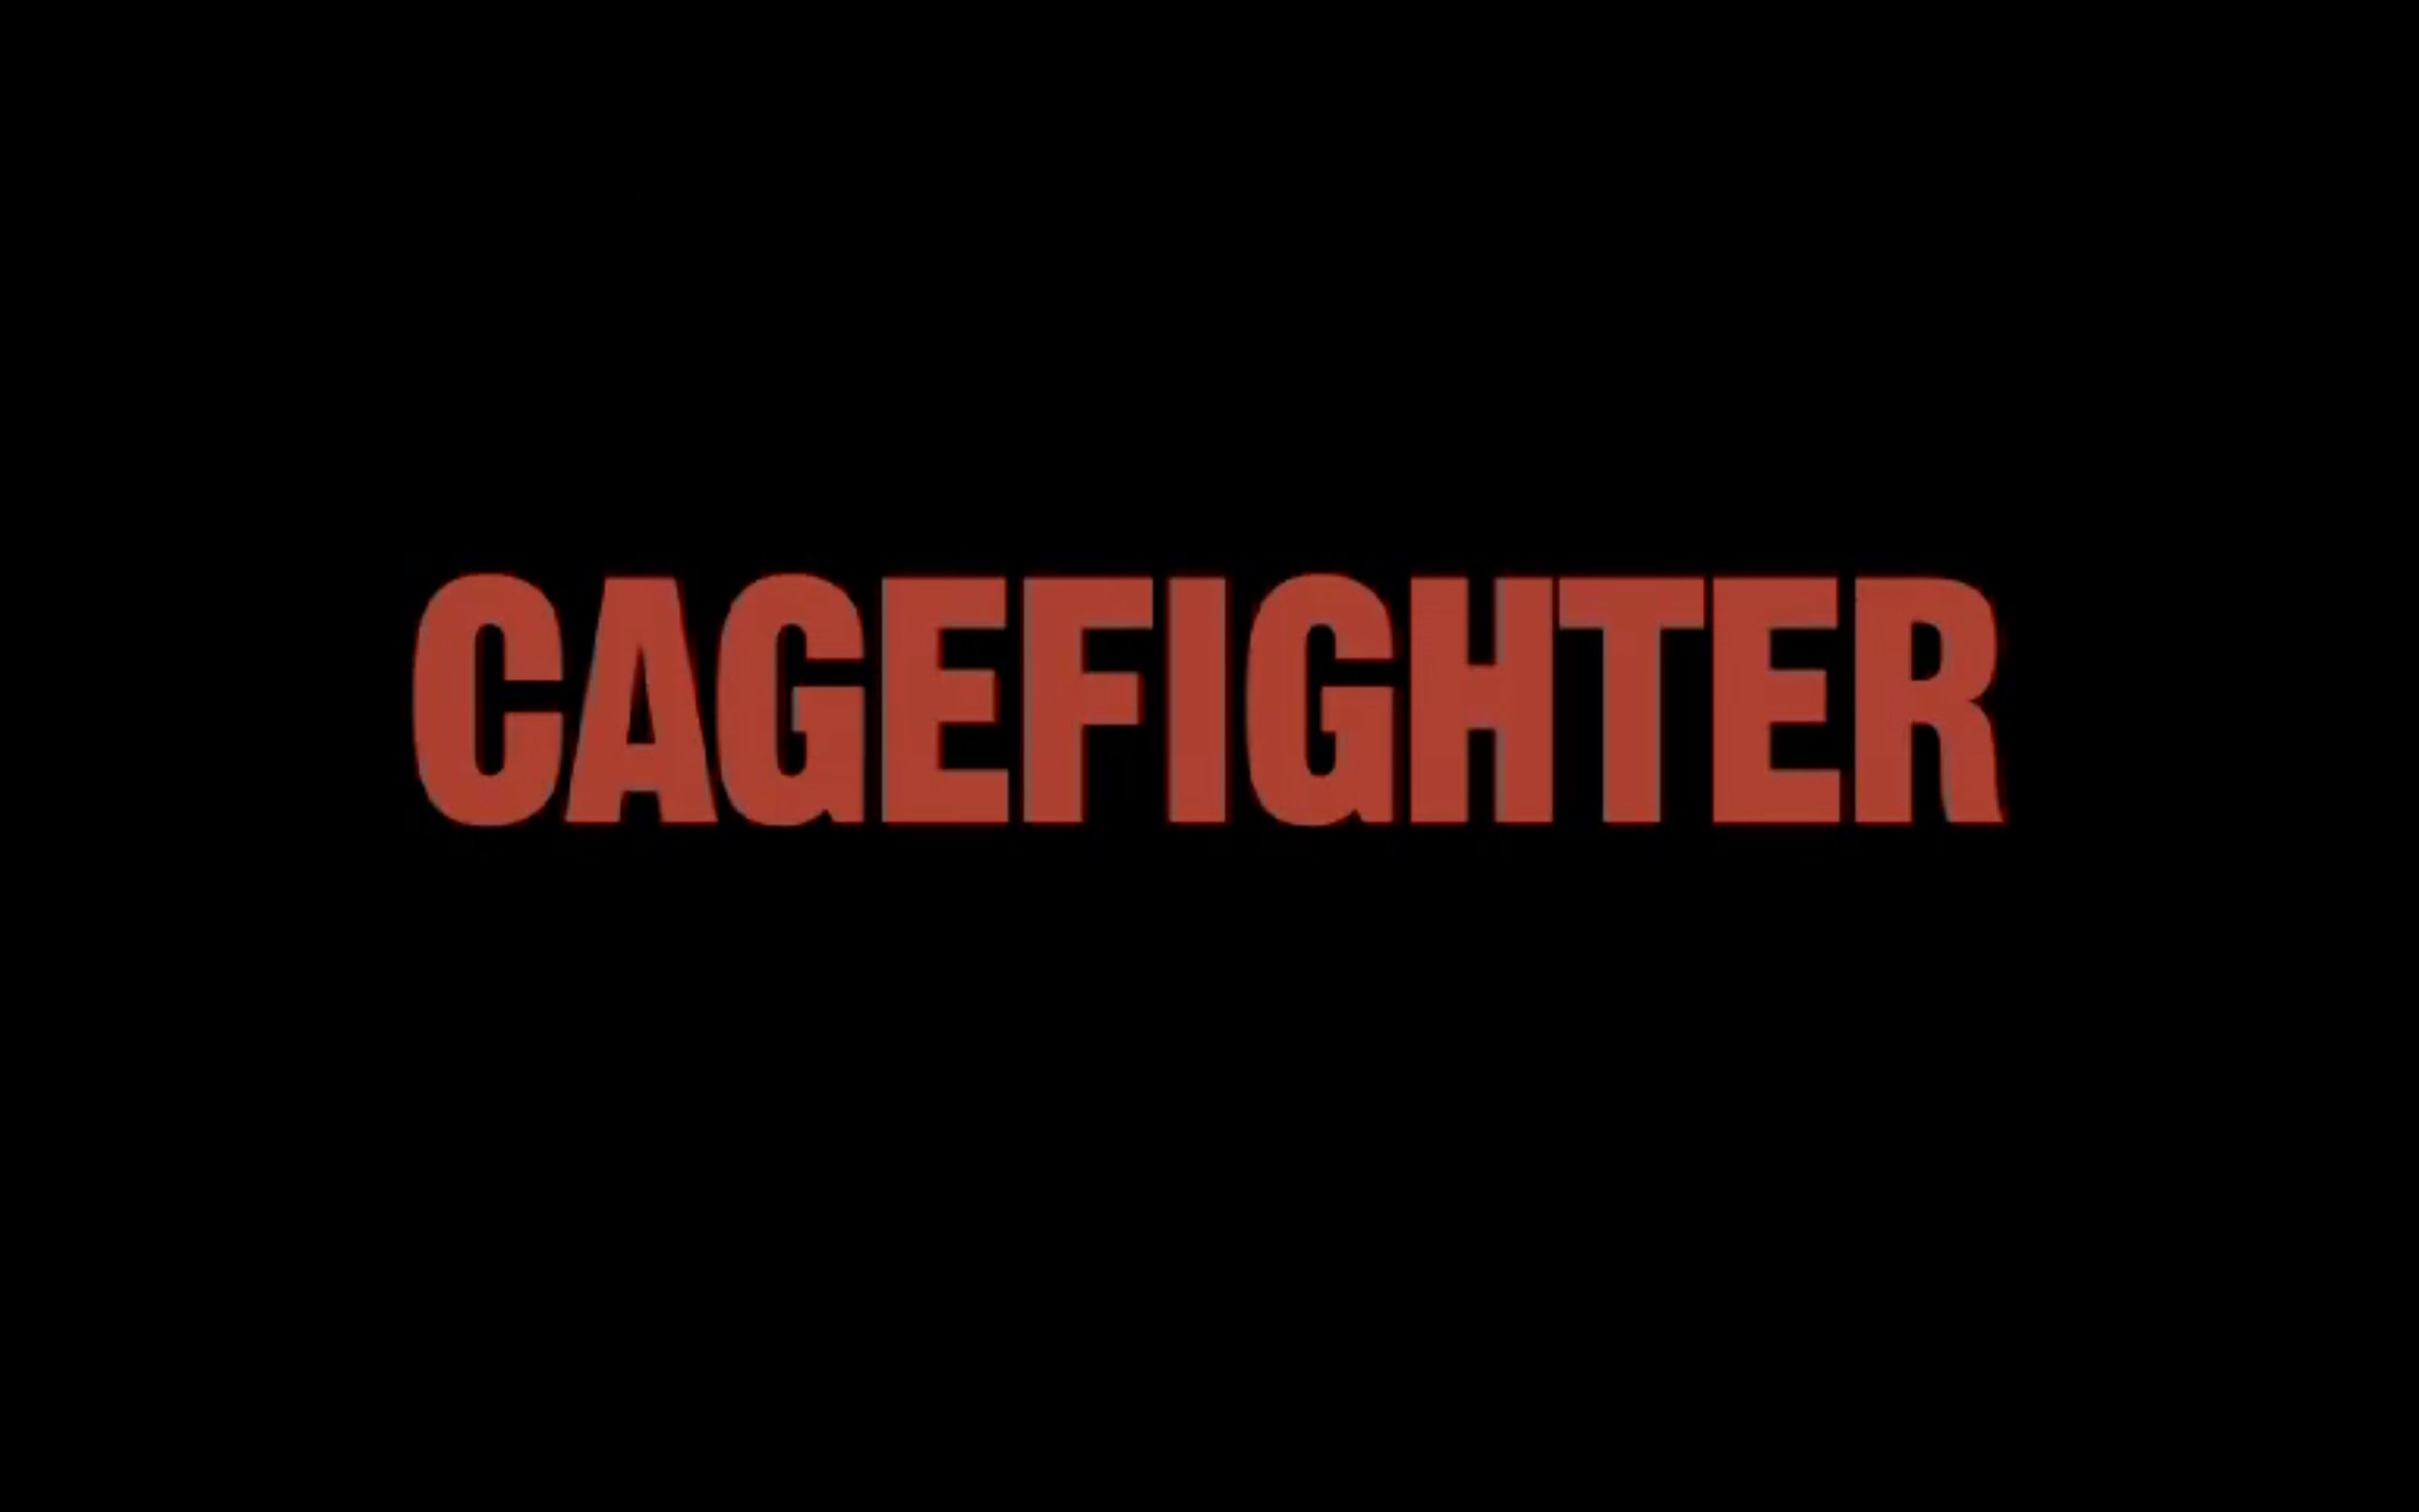 CAGEFIGHTER. 1 HOUR FEATURE LENGTH DOCUMENTARY : password: cageBSDTPC